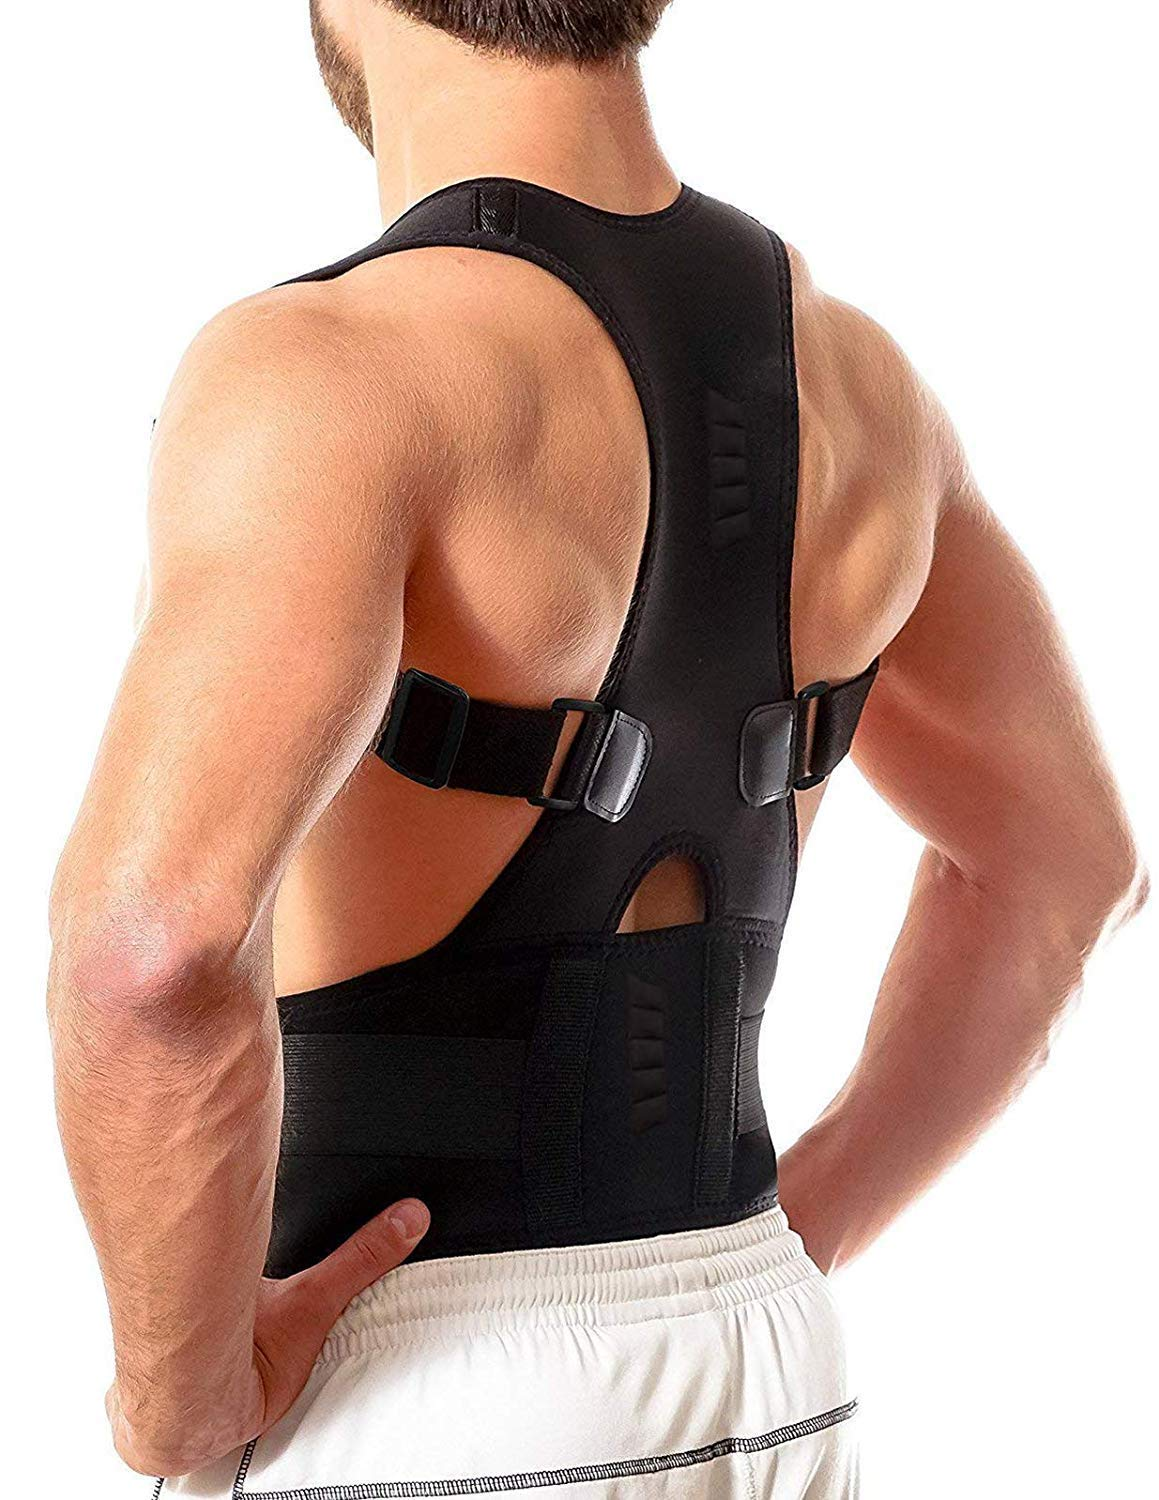 Bodychum Magnetic Therapy Posture Corrector Brace Shoulder Back Support Belt for Men Women Braces & Supports